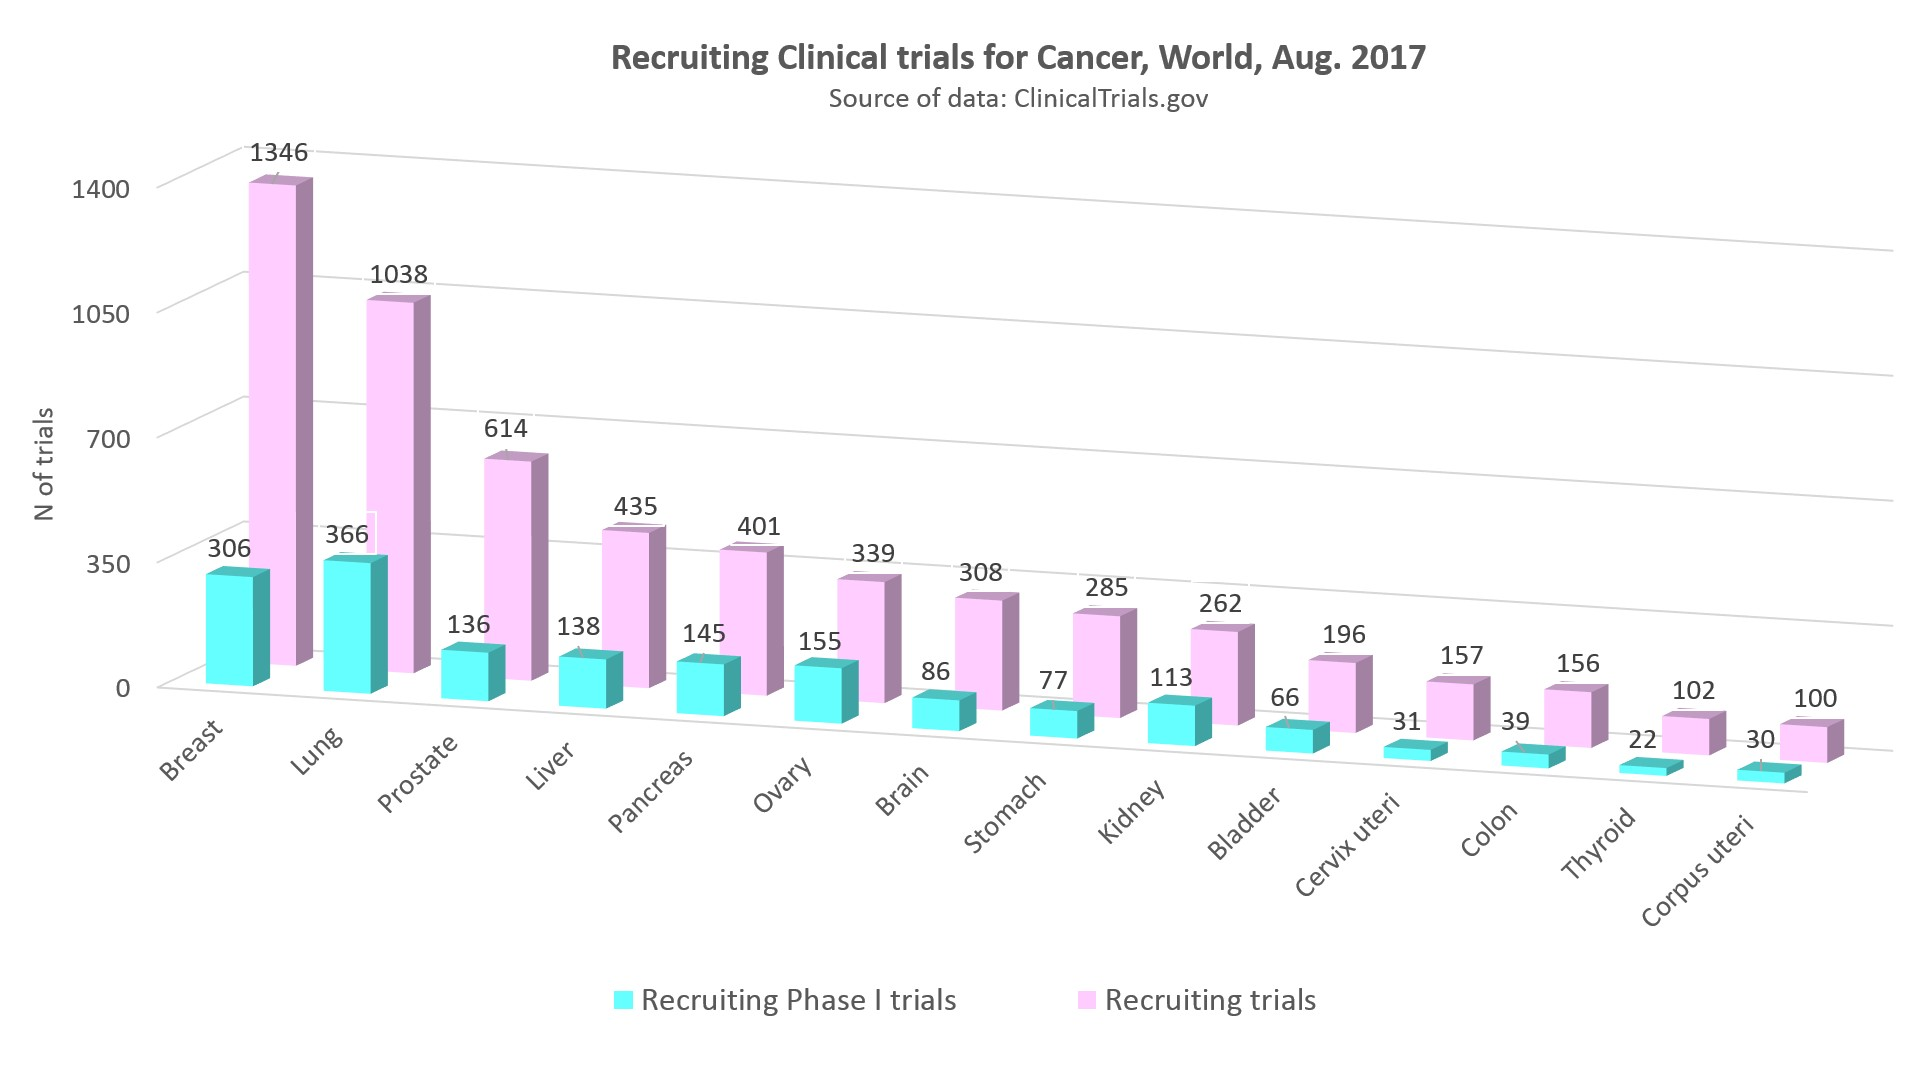 recruiting clinical trials for cancer worldwide, August 2017